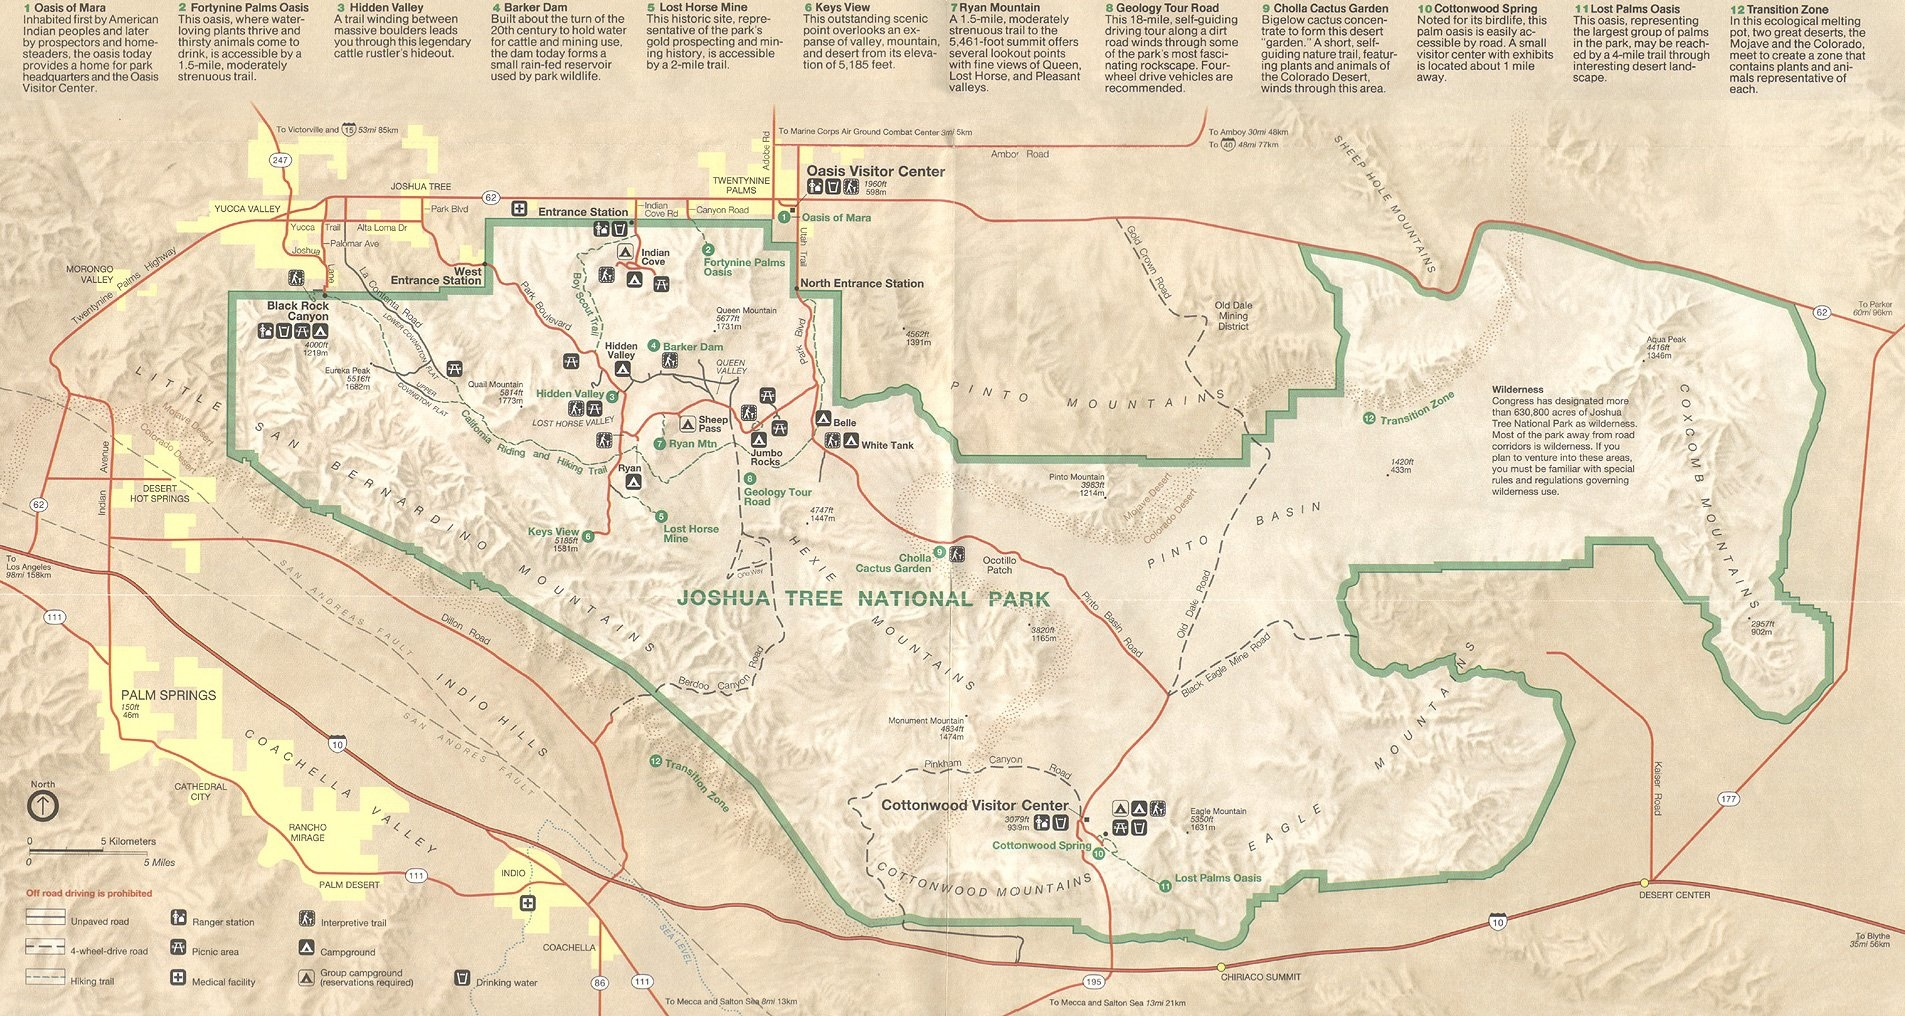 Joshua Tree National Park Map wolrd map